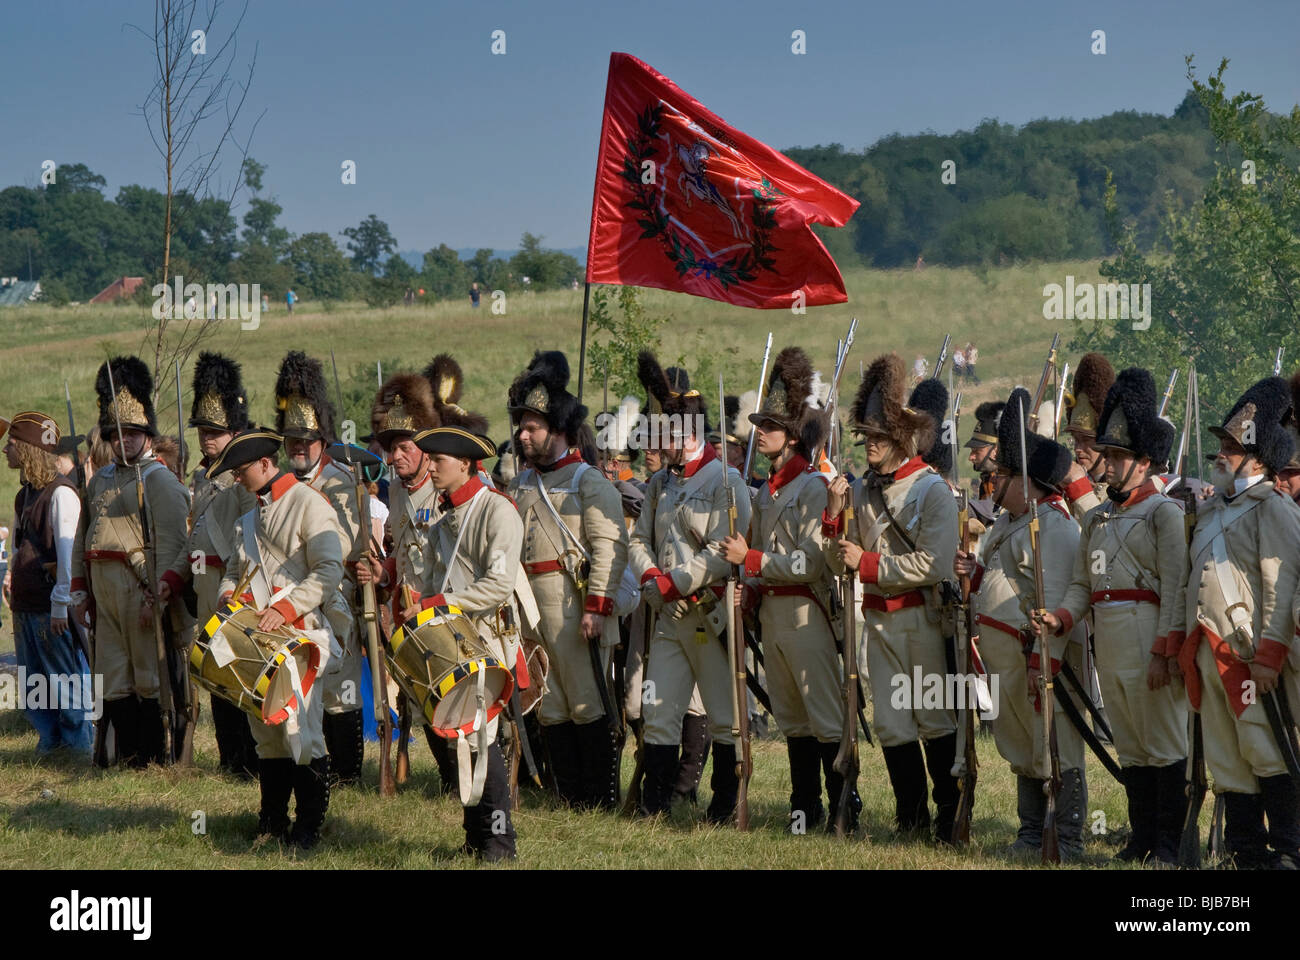 Reenactment of the Siege of Neisse during Napoleonic War with Prussia in 1807 at Nysa, Opolskie, Poland - Stock Image